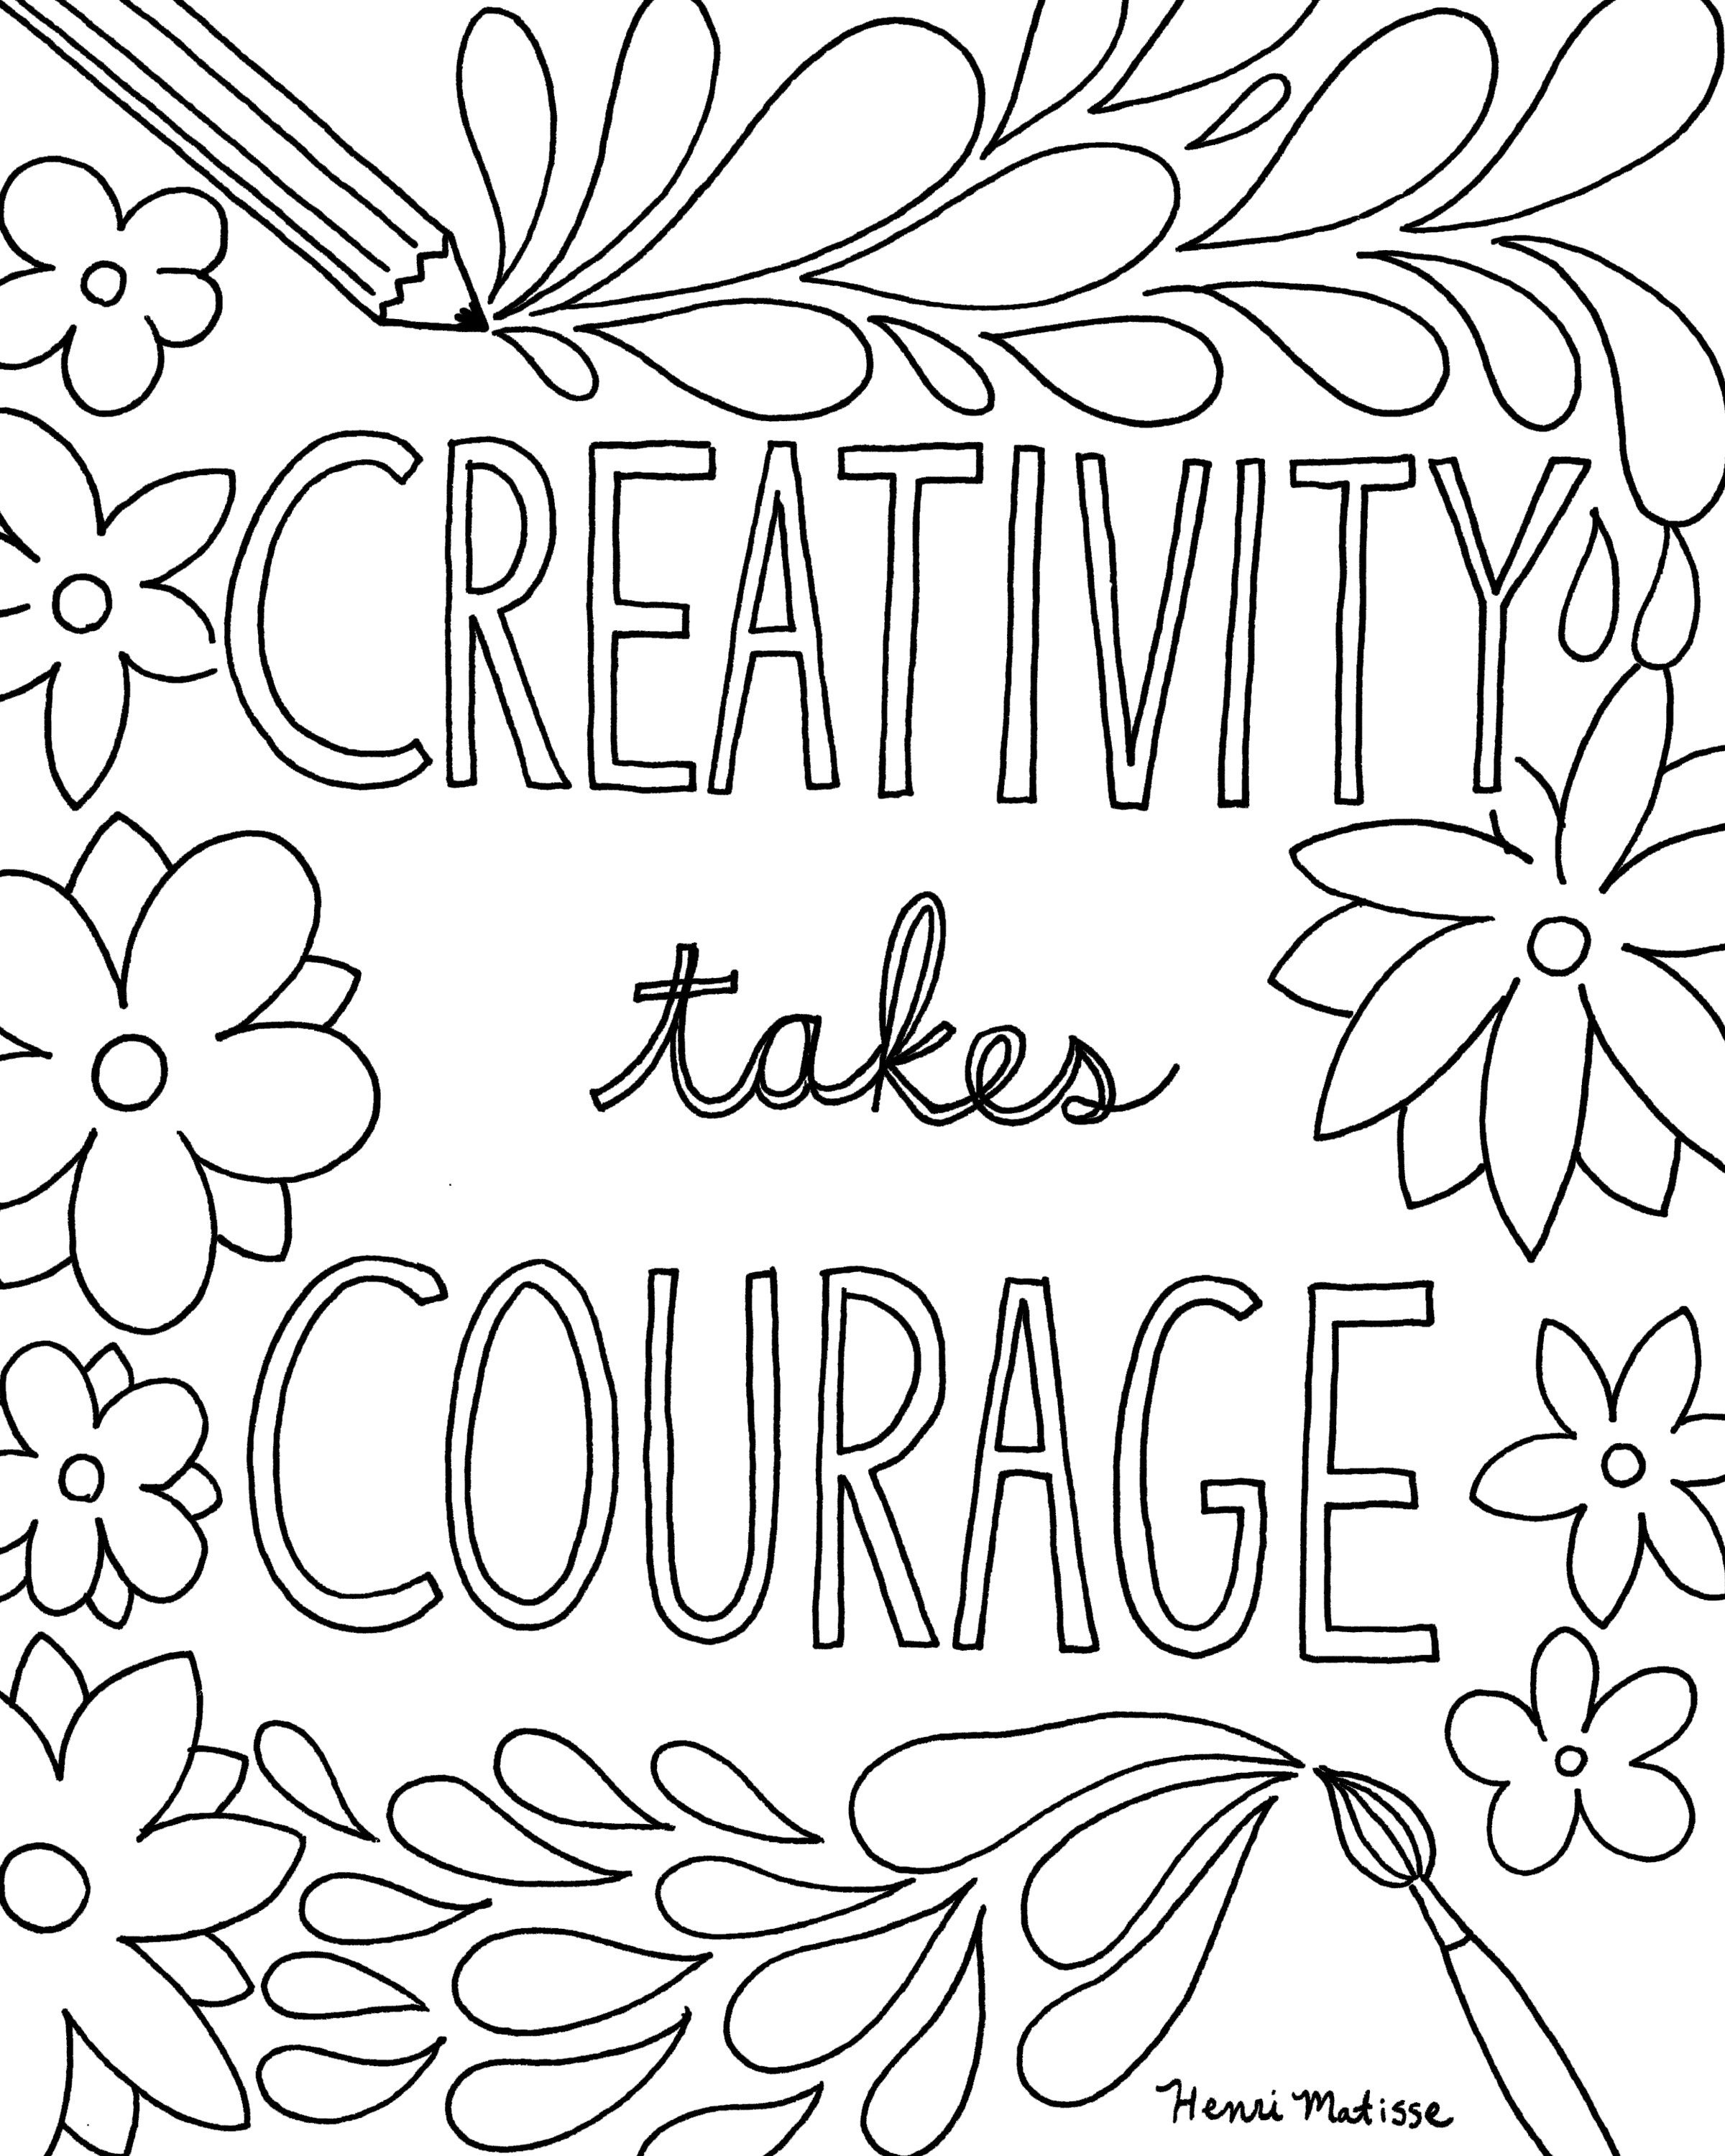 Free Printable Quote Coloring Pages For Grown-Ups | Drawing And - Free Printable Pictures To Color